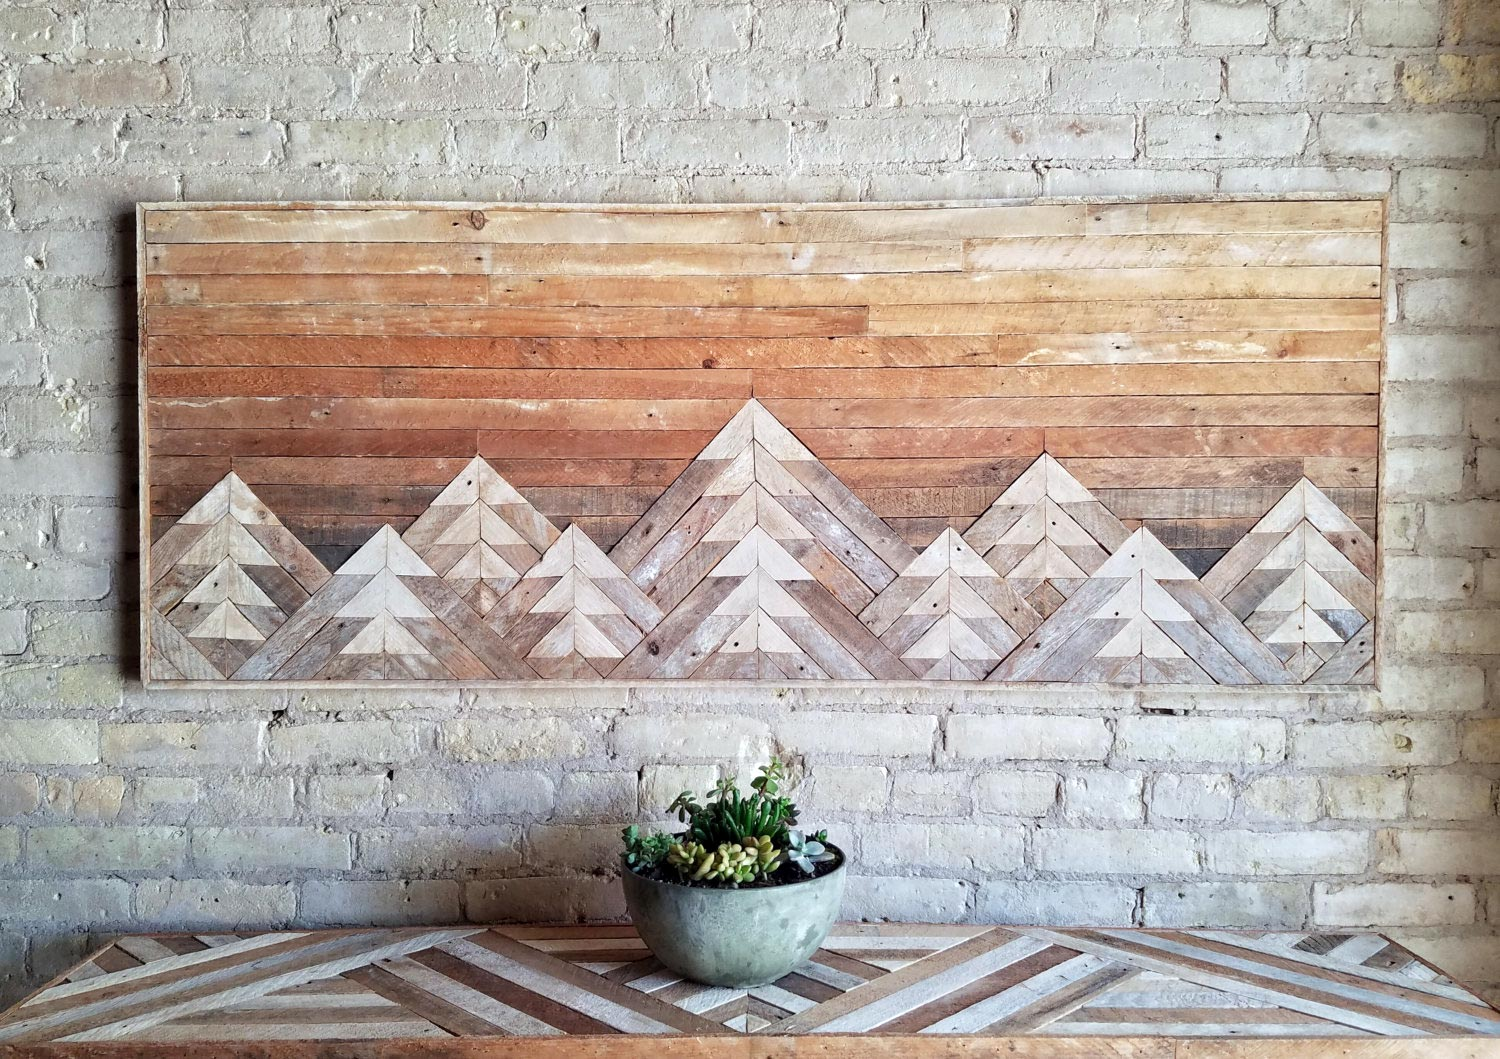 Bon Reclaimed Wood Wall Art With Mountains